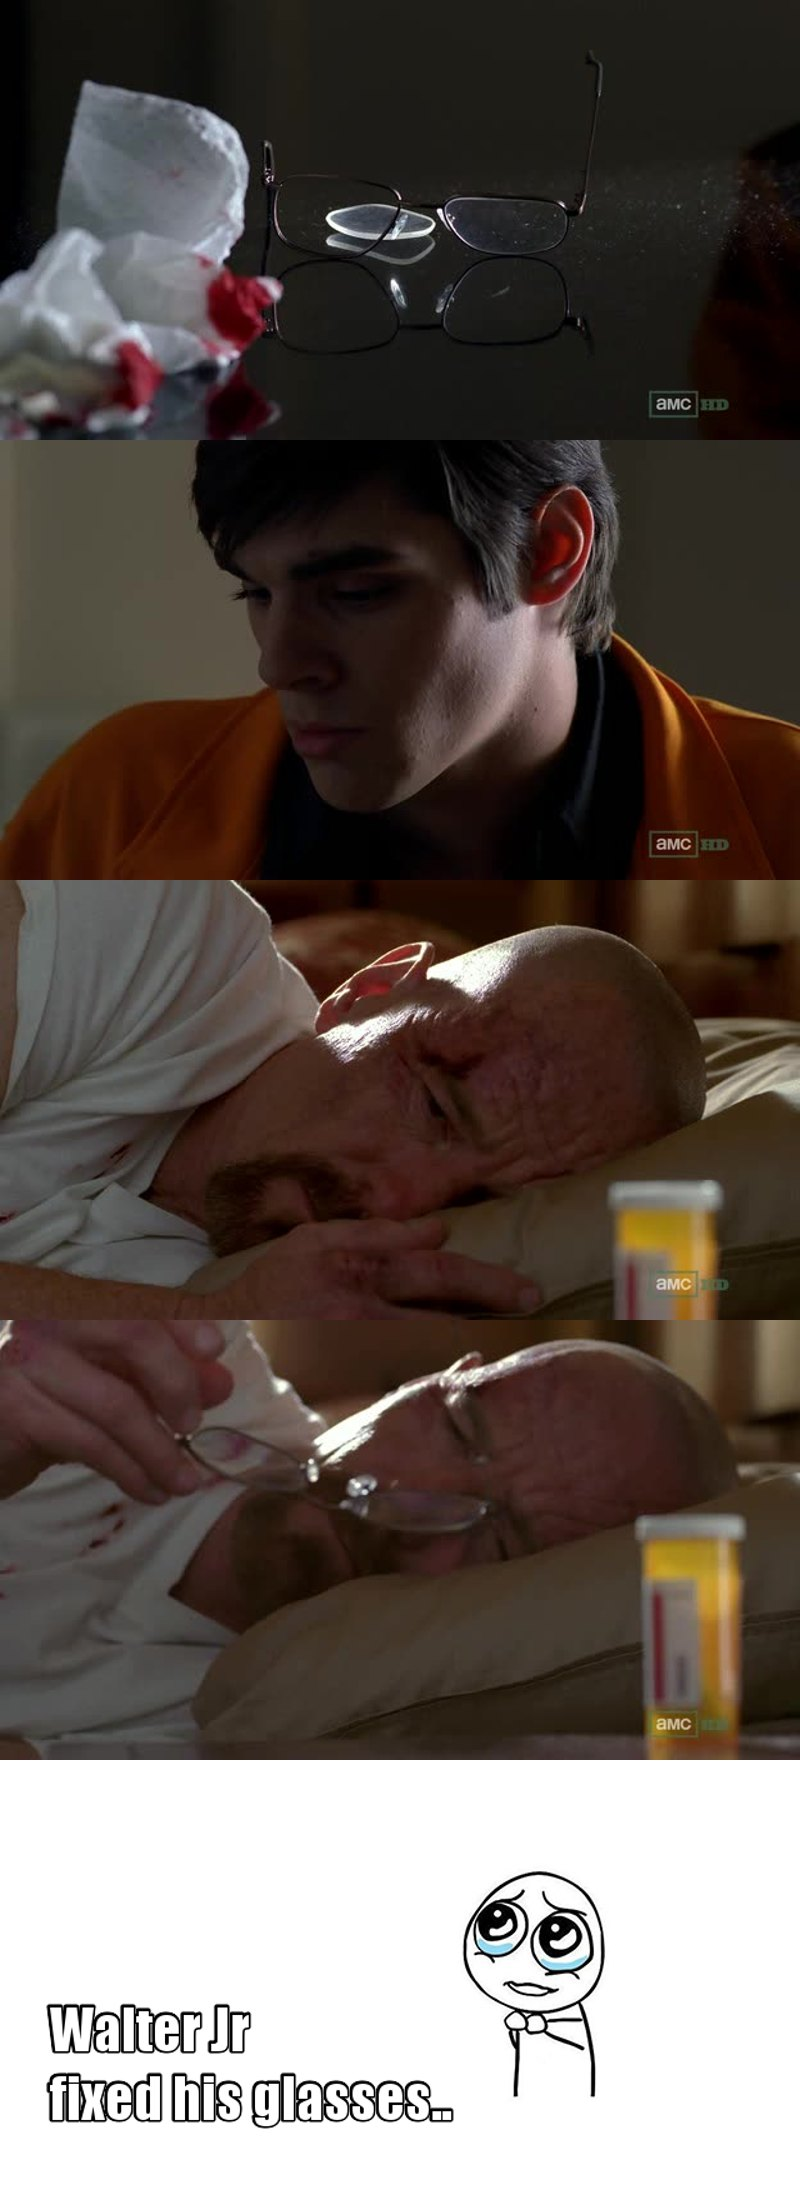 A lot of wow factors in this episode, but it's the first time I really have felt sad and heart broken on the behalf of the White's. Jesse has always been the one I've felt sorry for, but for Walter Jr to find his father beaten up and in a pill-alcohol haze on his 16th birthday.. Fuuuuuuu...... And the talk they had.. And we got to see that Walter Jr had gotten the glasses fixed, and the second talk, when he said it's the first time he felt his father was honest and real.. Wow, it all hit me right in the feels! Finally something quite genuine and extremely realistic in this show when it comes to emotions and relations! And so beautifully filmed, once again!